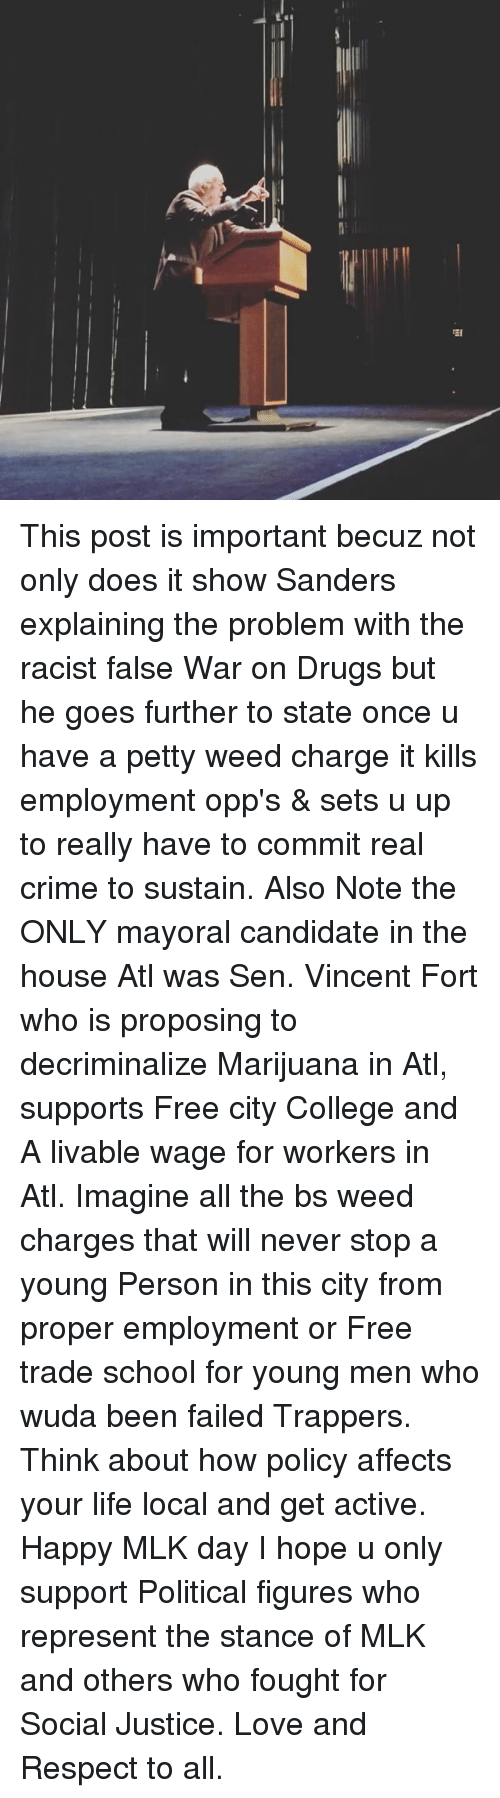 Crime, Memes, and MLK Day: 뙤 This post is important becuz not only does it show Sanders explaining the problem with the racist false War on Drugs but he goes further to state once u have a petty weed charge it kills employment opp's & sets u up to really have to commit real crime to sustain. Also Note the ONLY mayoral candidate in the house Atl was Sen. Vincent Fort who is proposing to decriminalize Marijuana in Atl, supports Free city College and A livable wage for workers in Atl. Imagine all the bs weed charges that will never stop a young Person in this city from proper employment or Free trade school for young men who wuda been failed Trappers. Think about how policy affects your life local and get active. Happy MLK day I hope u only support Political figures who represent the stance of MLK and others who fought for Social Justice. Love and Respect to all.